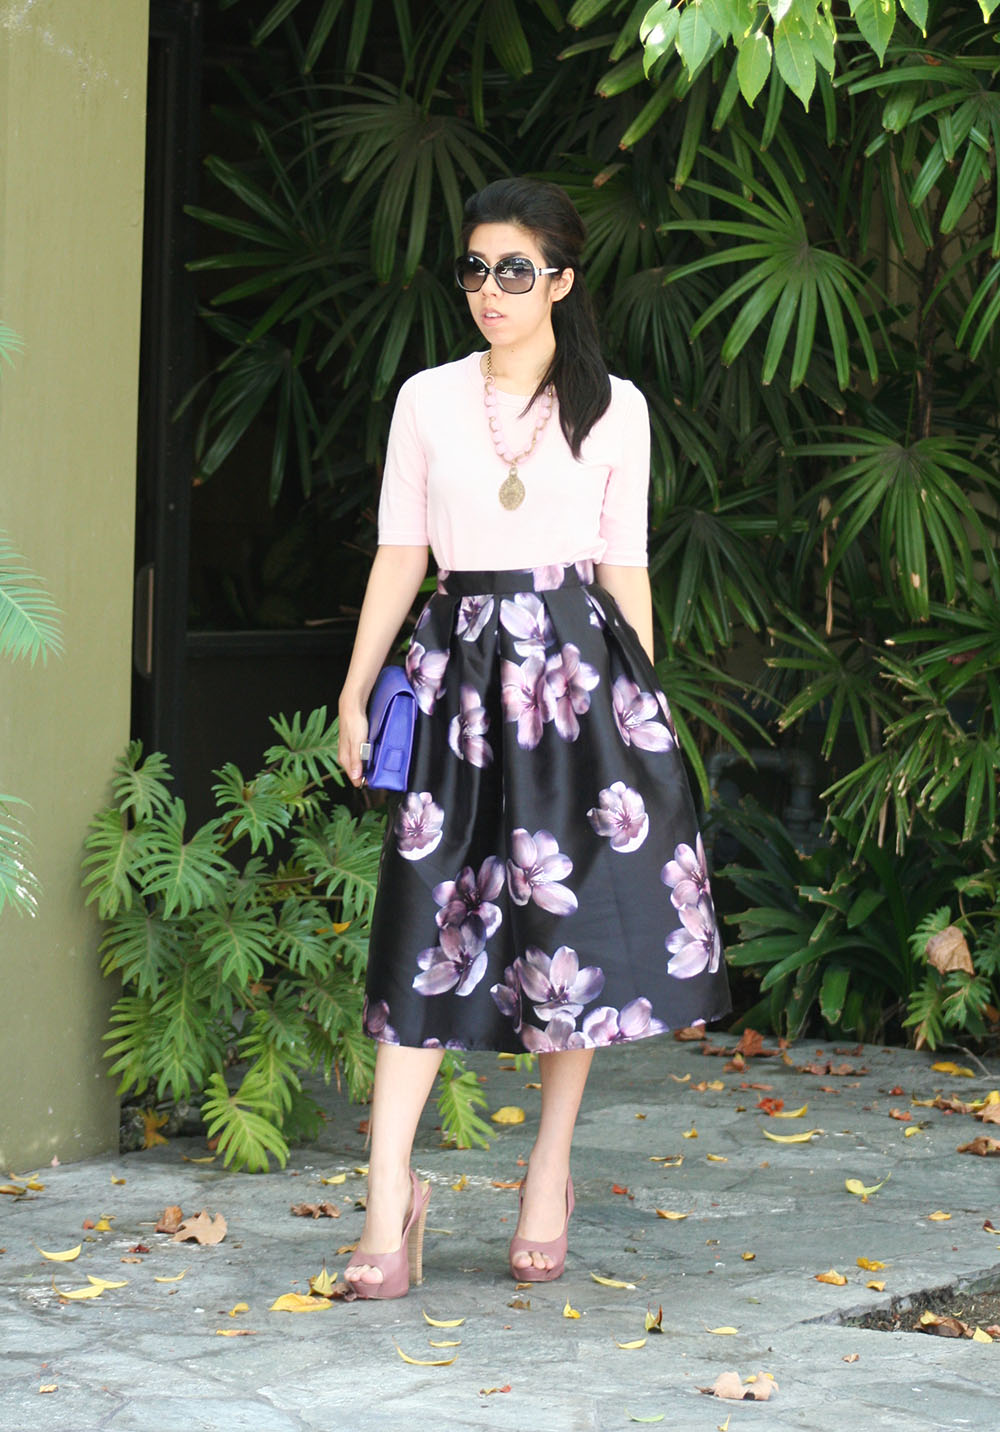 Adrienne Nguyen_Invictus_Souther Belle Fashion_Flower Full Midi Skirt _ Pink and purple outfit